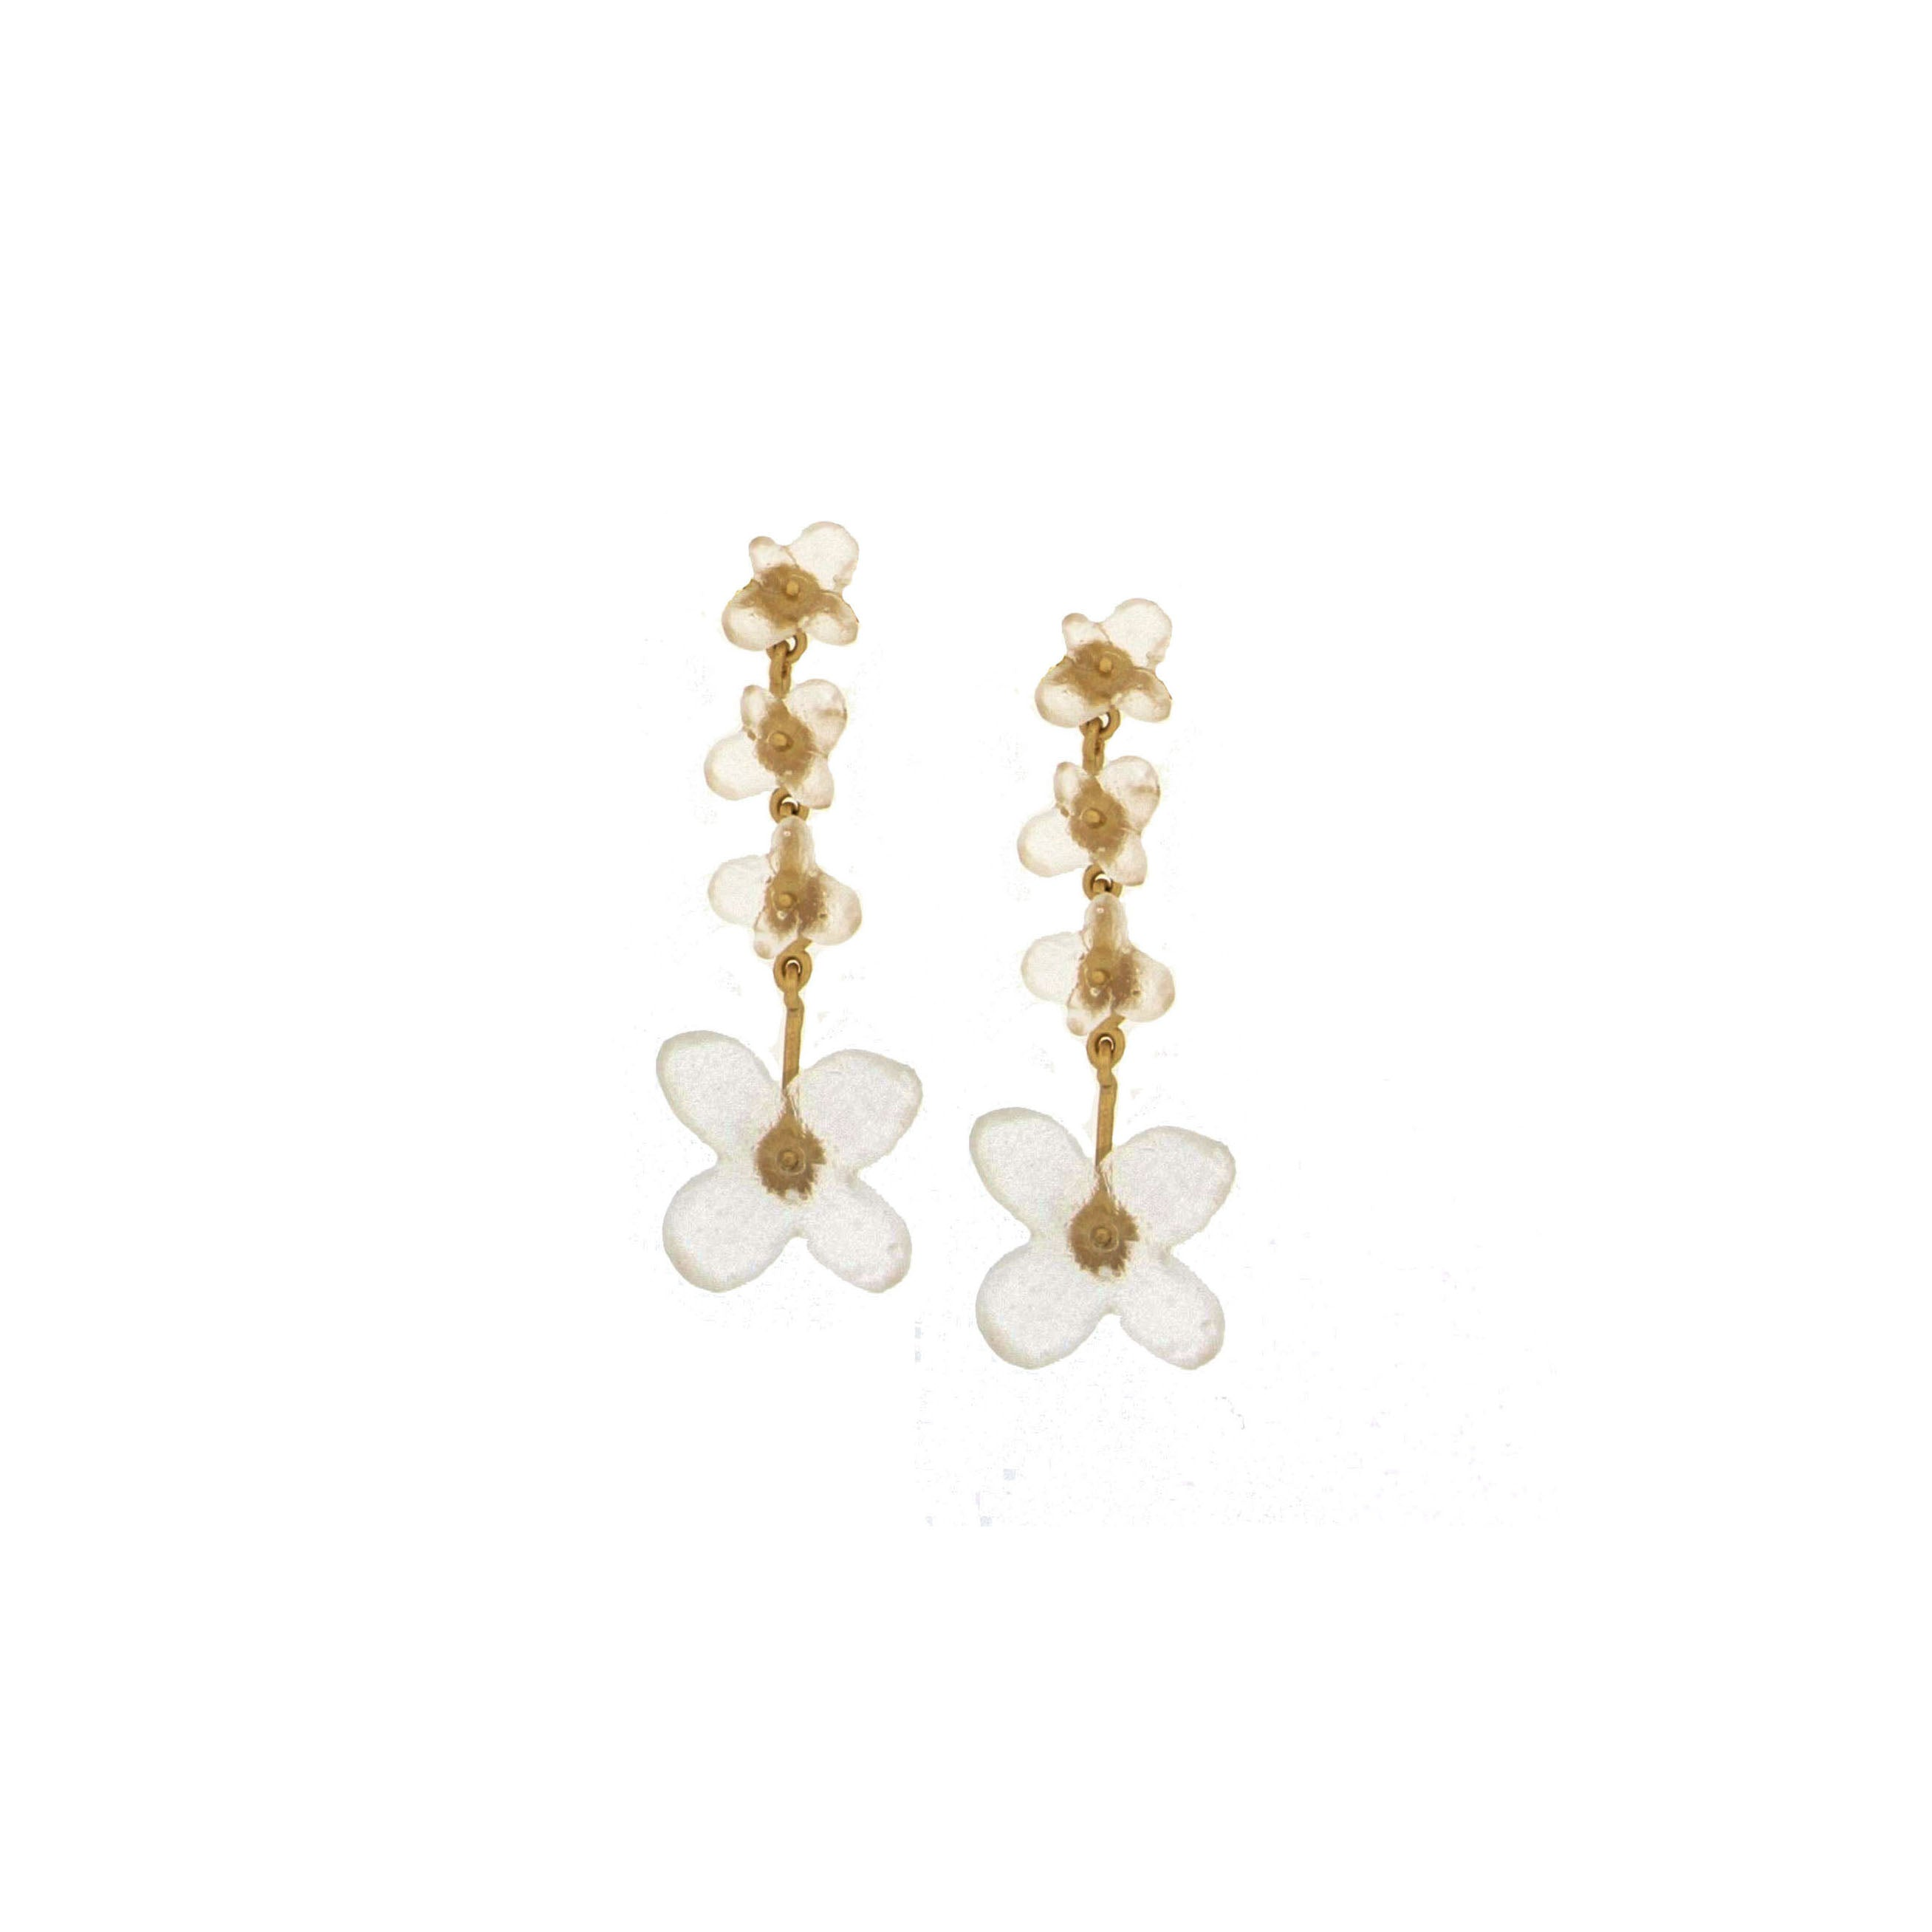 Hydrangea Drop Post Earrings - White